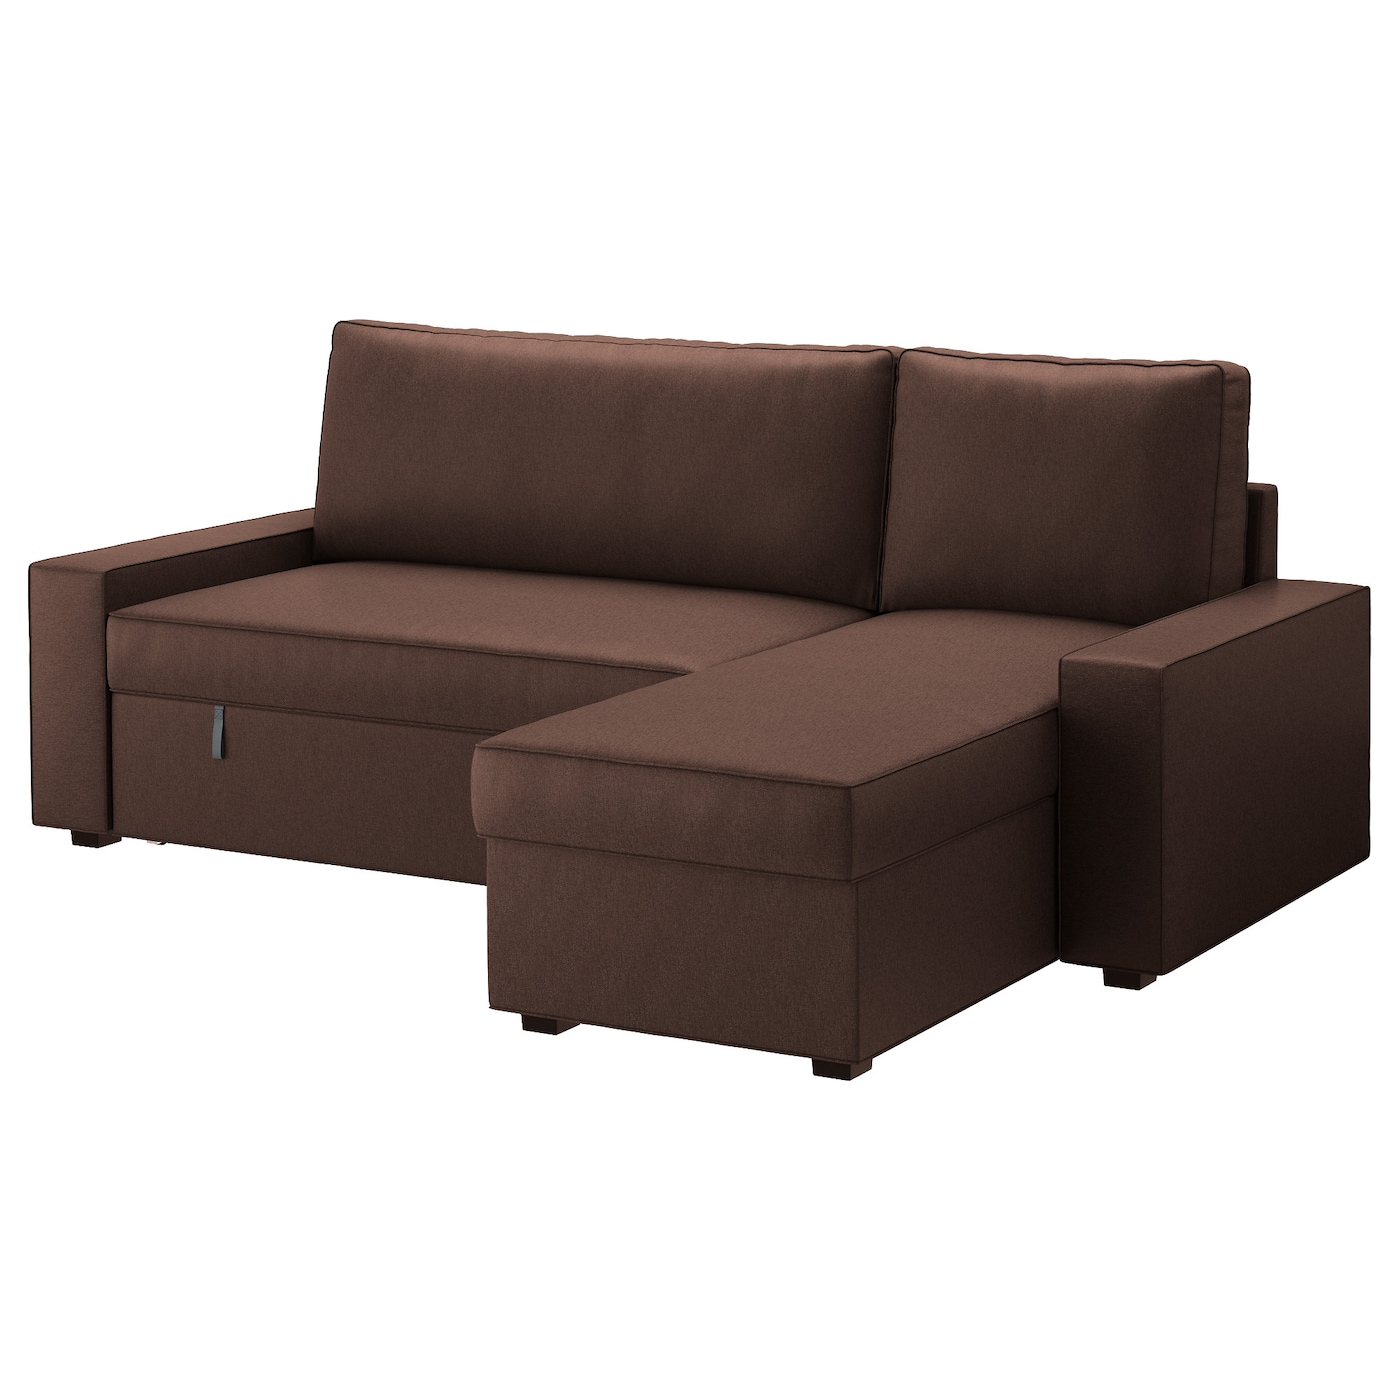 Vilasund sofa bed with chaise longue borred dark brown ikea for Sofa cama con almacenaje